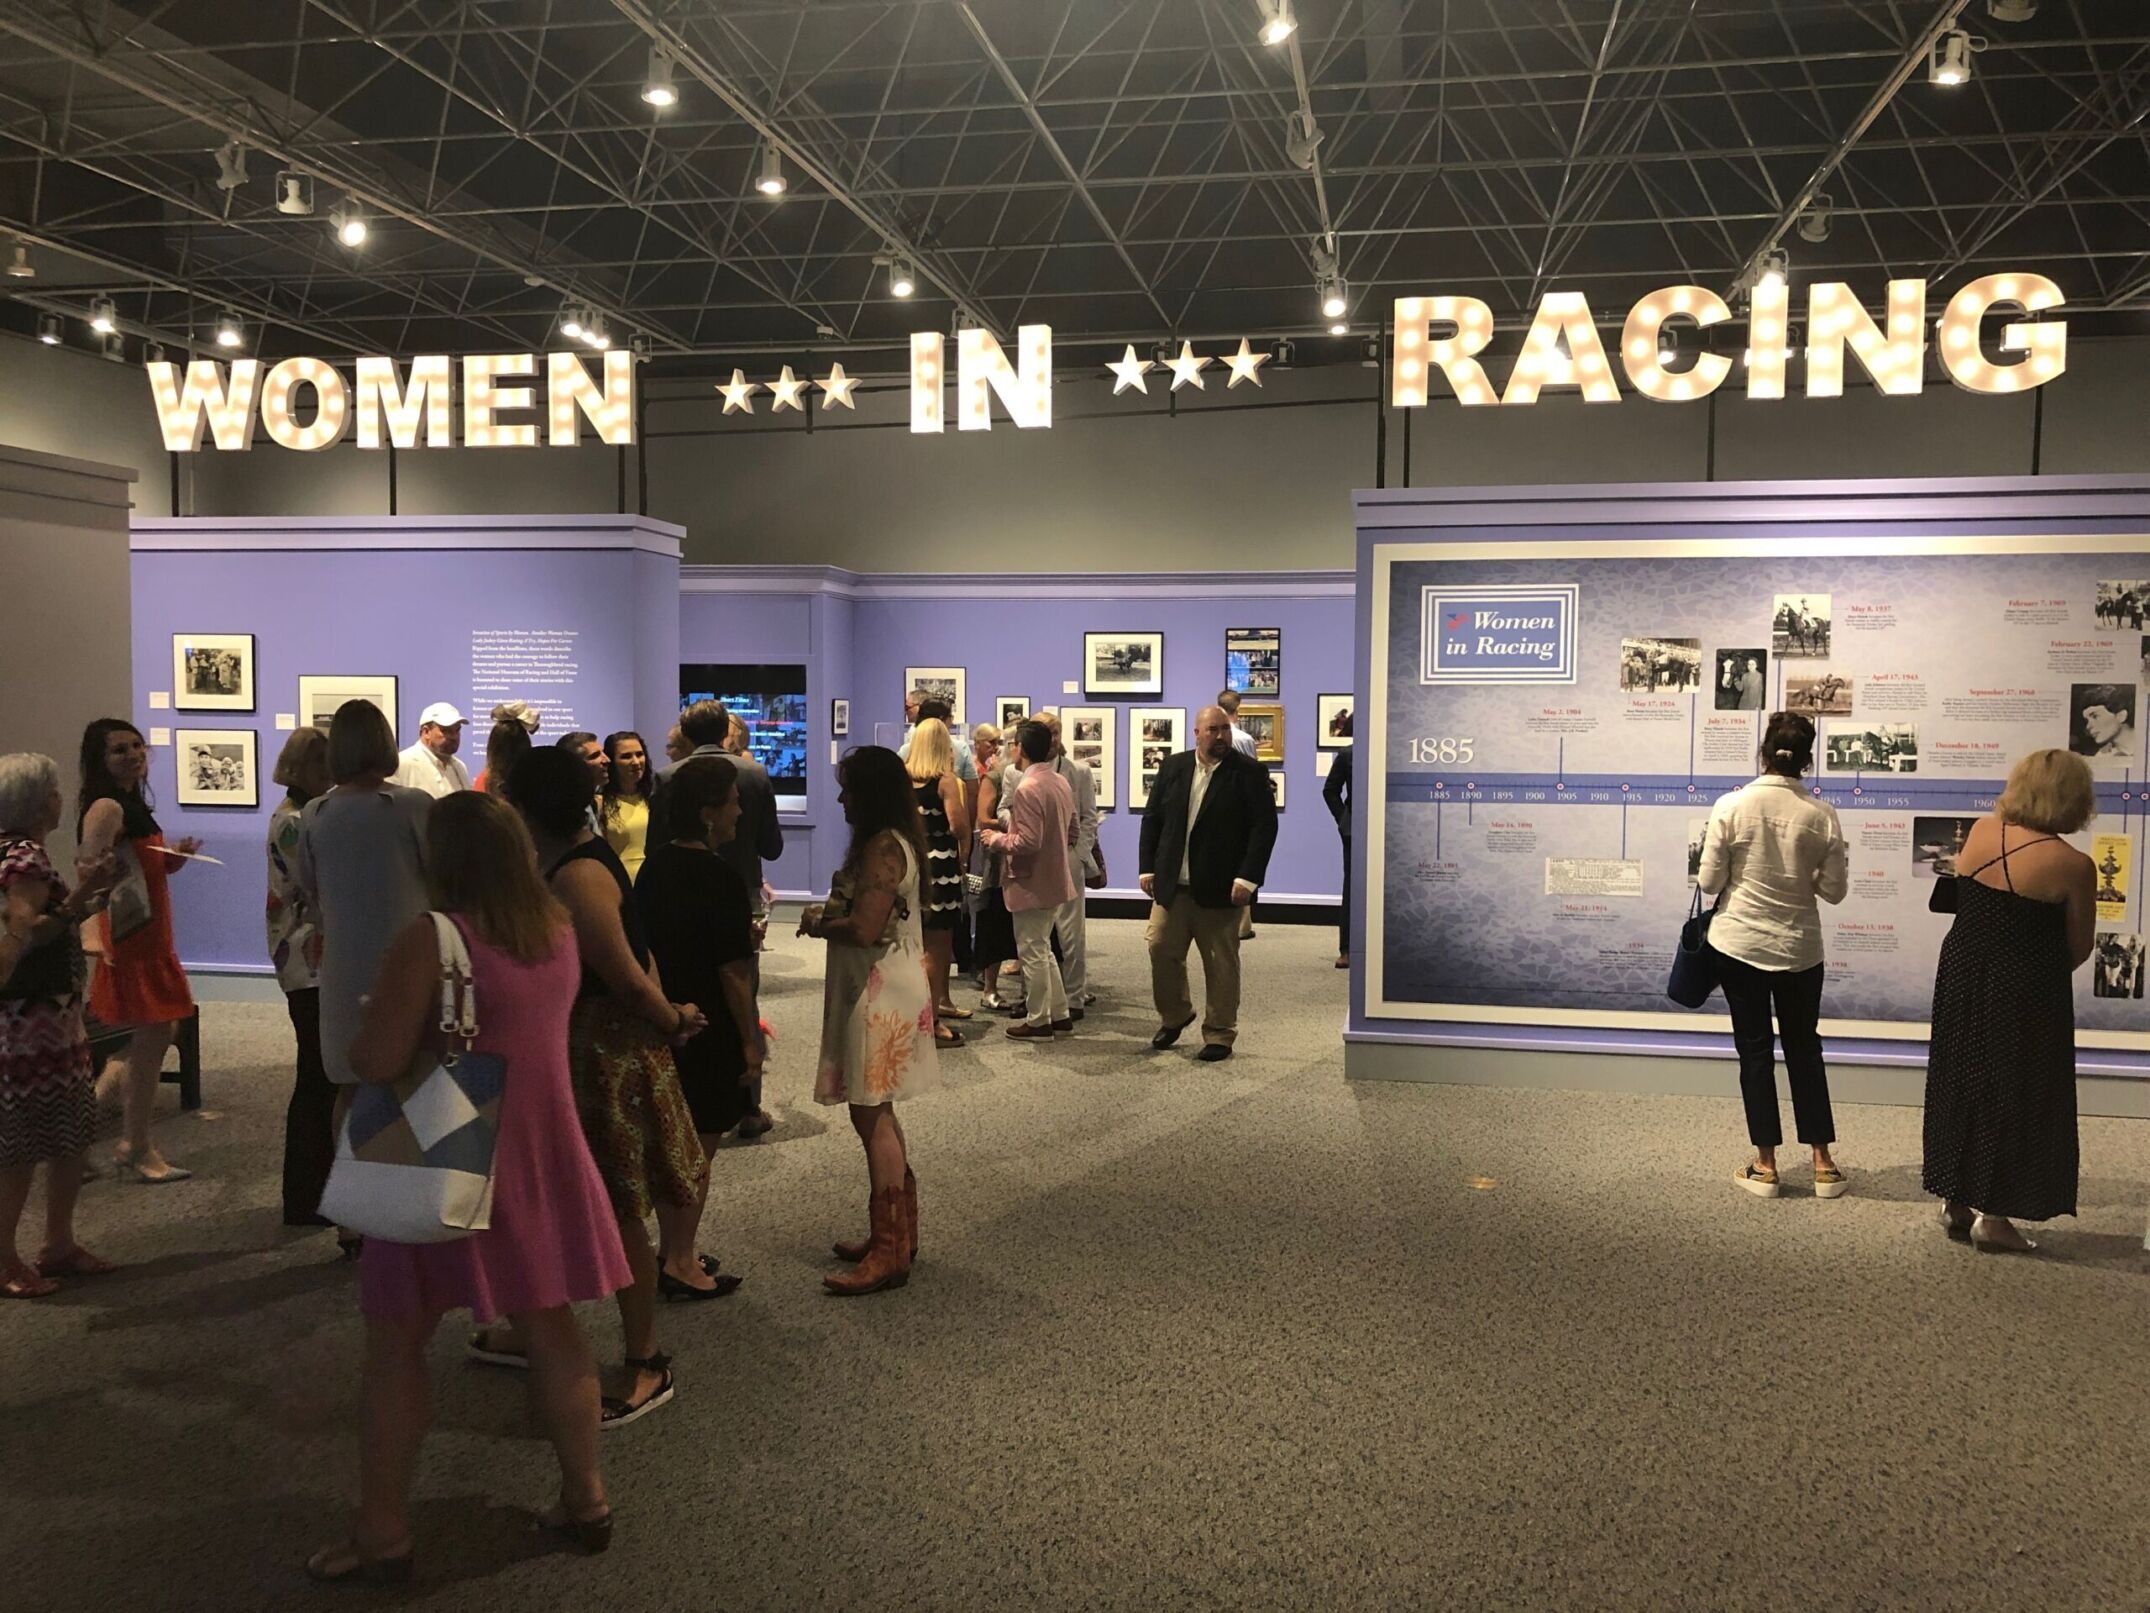 People at museum exhibit for Women In Racing Exhibit at the National Racing Museum and Hall of Fame